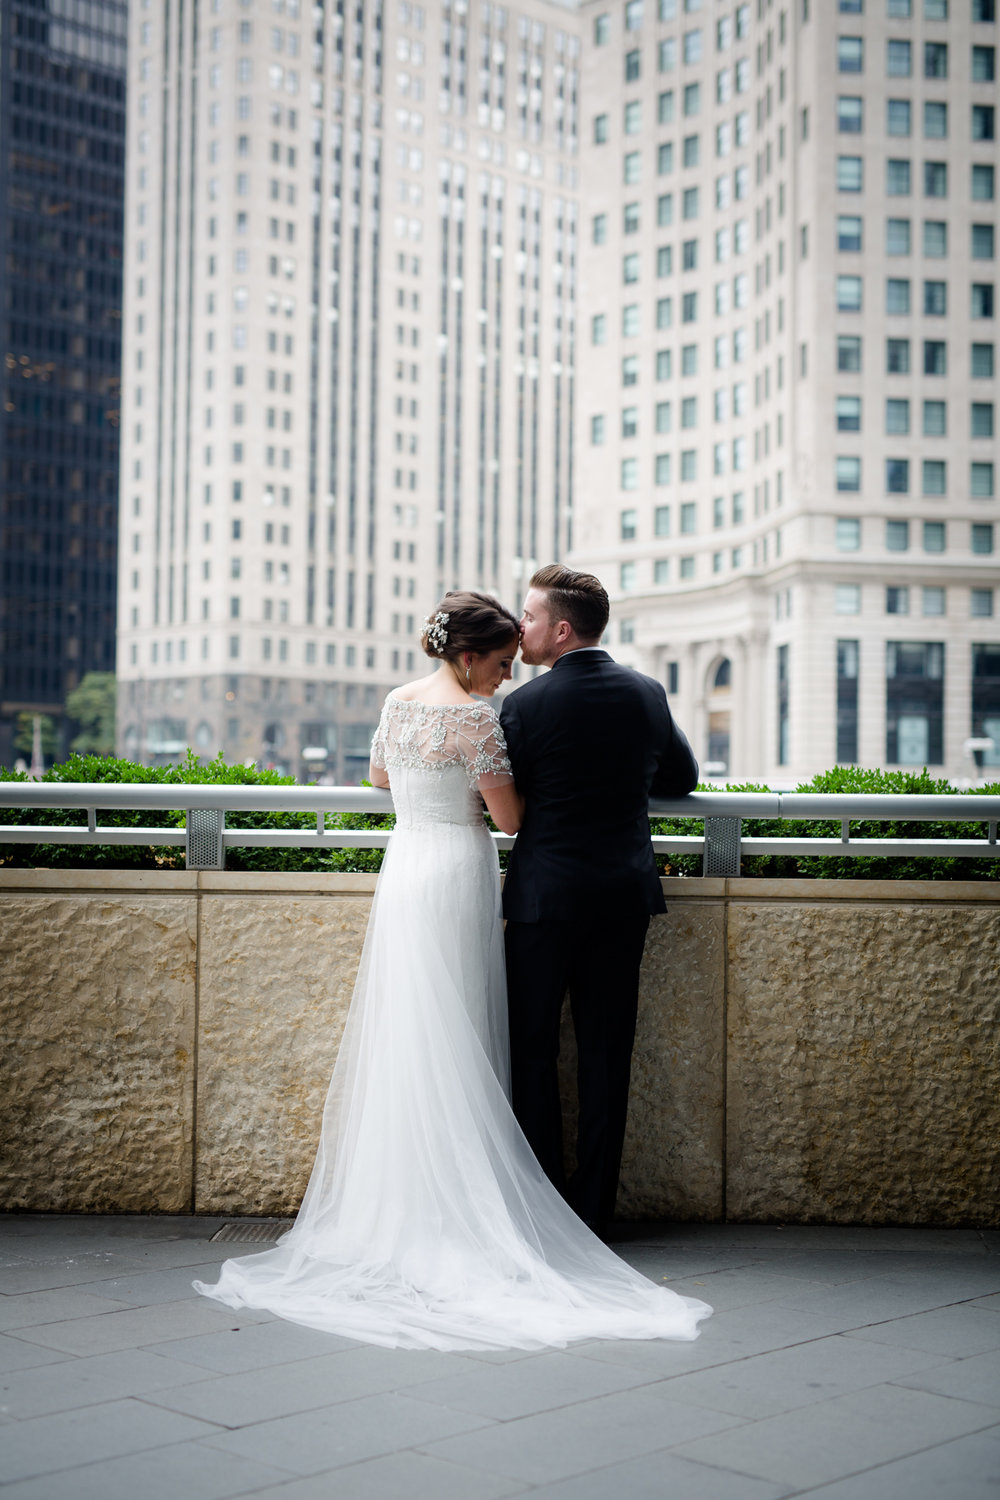 Wedding photo locations in Chicago